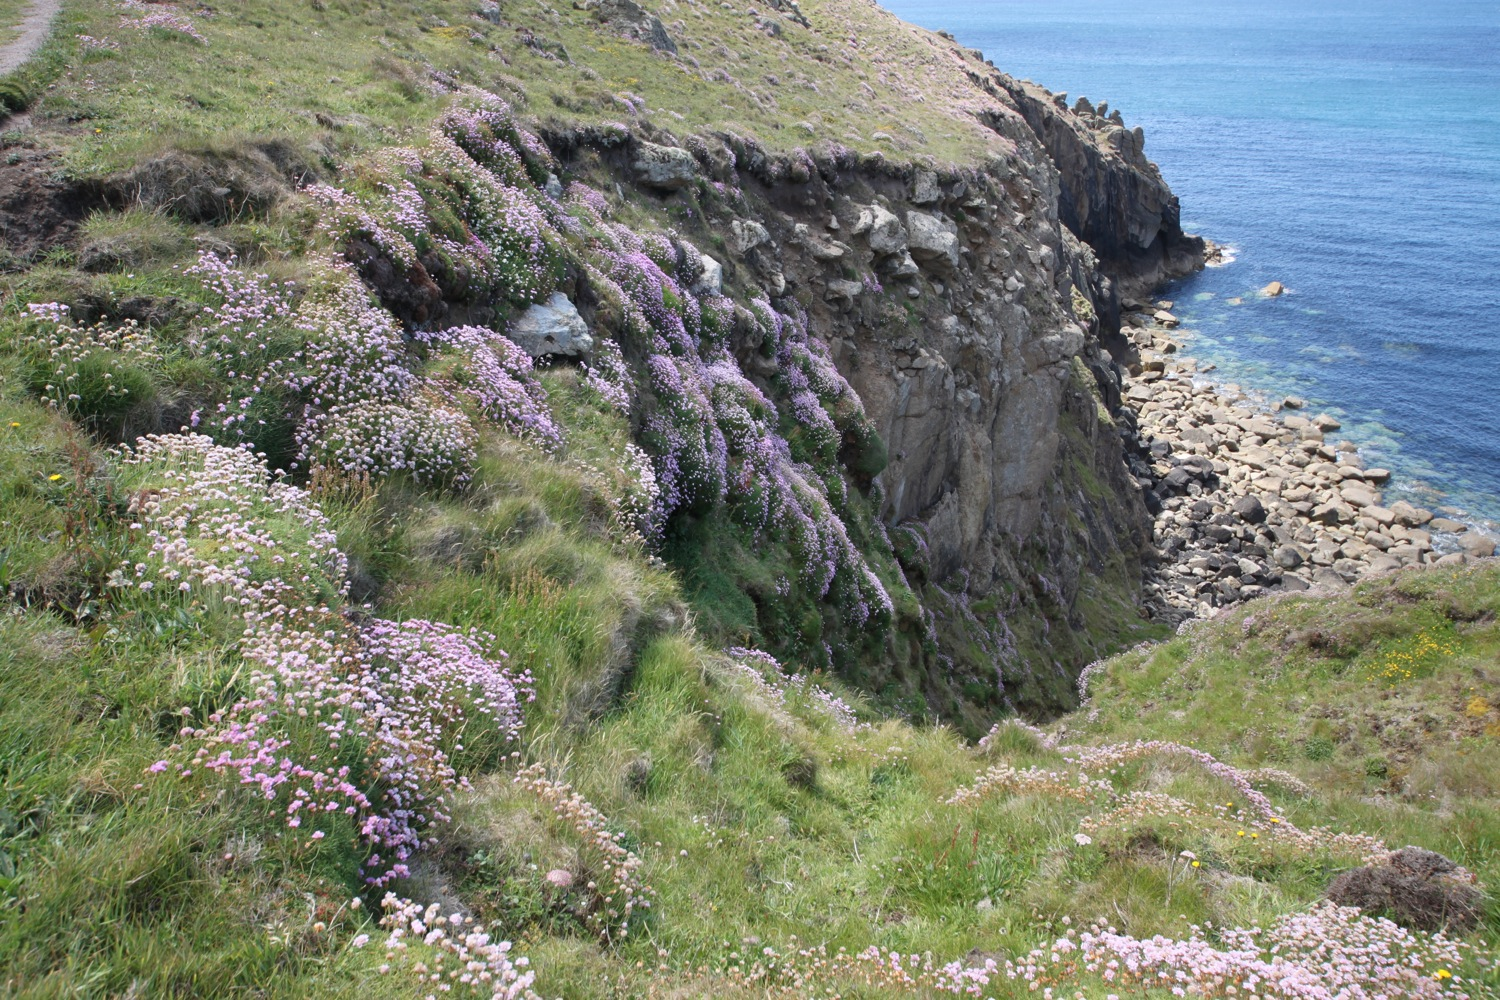 sea thrift on rocky cliffs